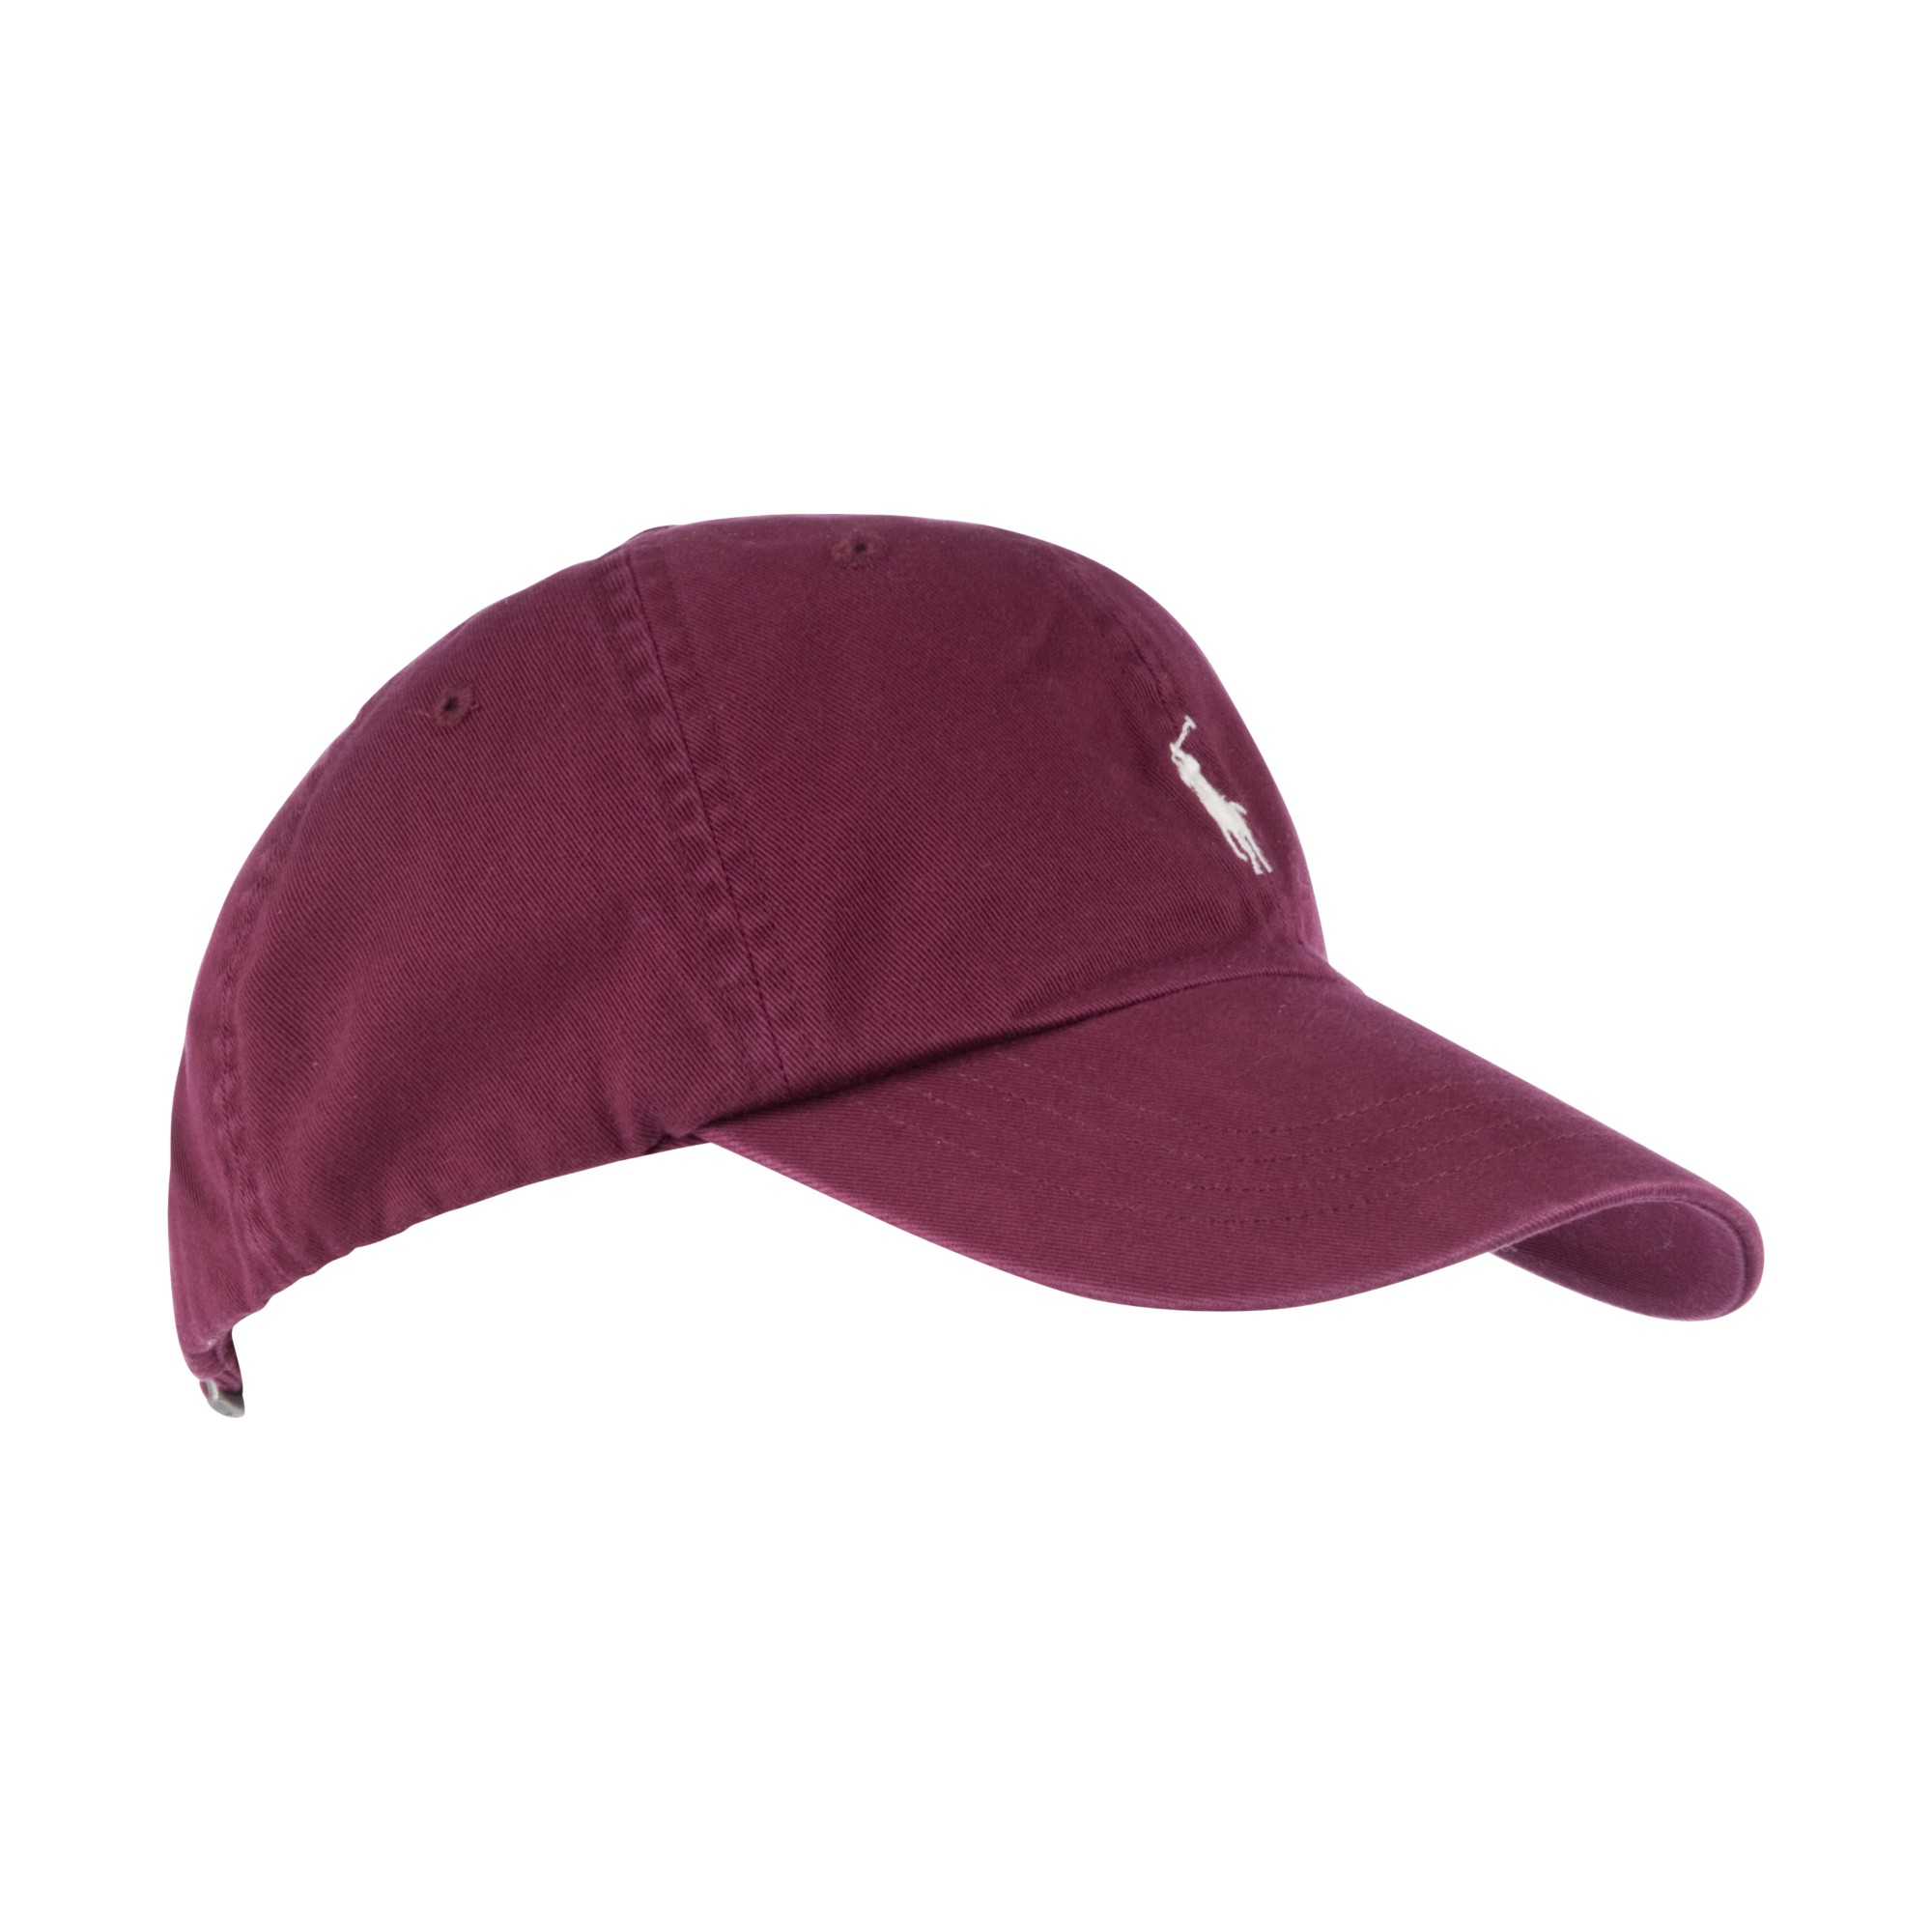 polo ralph lauren baseball cap in red for men lyst. Black Bedroom Furniture Sets. Home Design Ideas